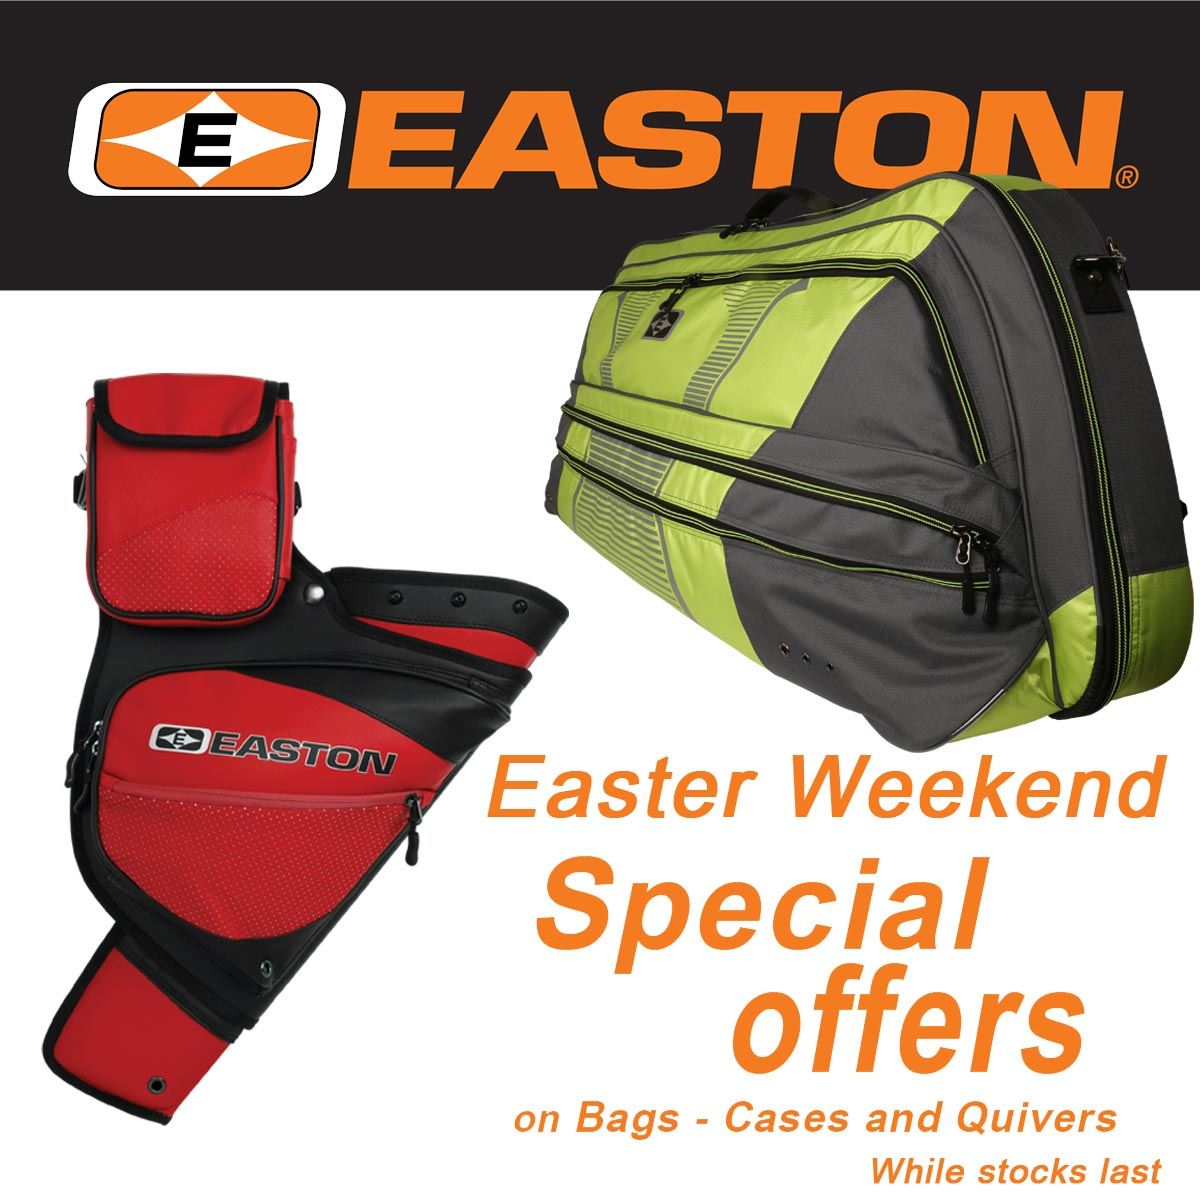 Easton Accessories Easter Offer